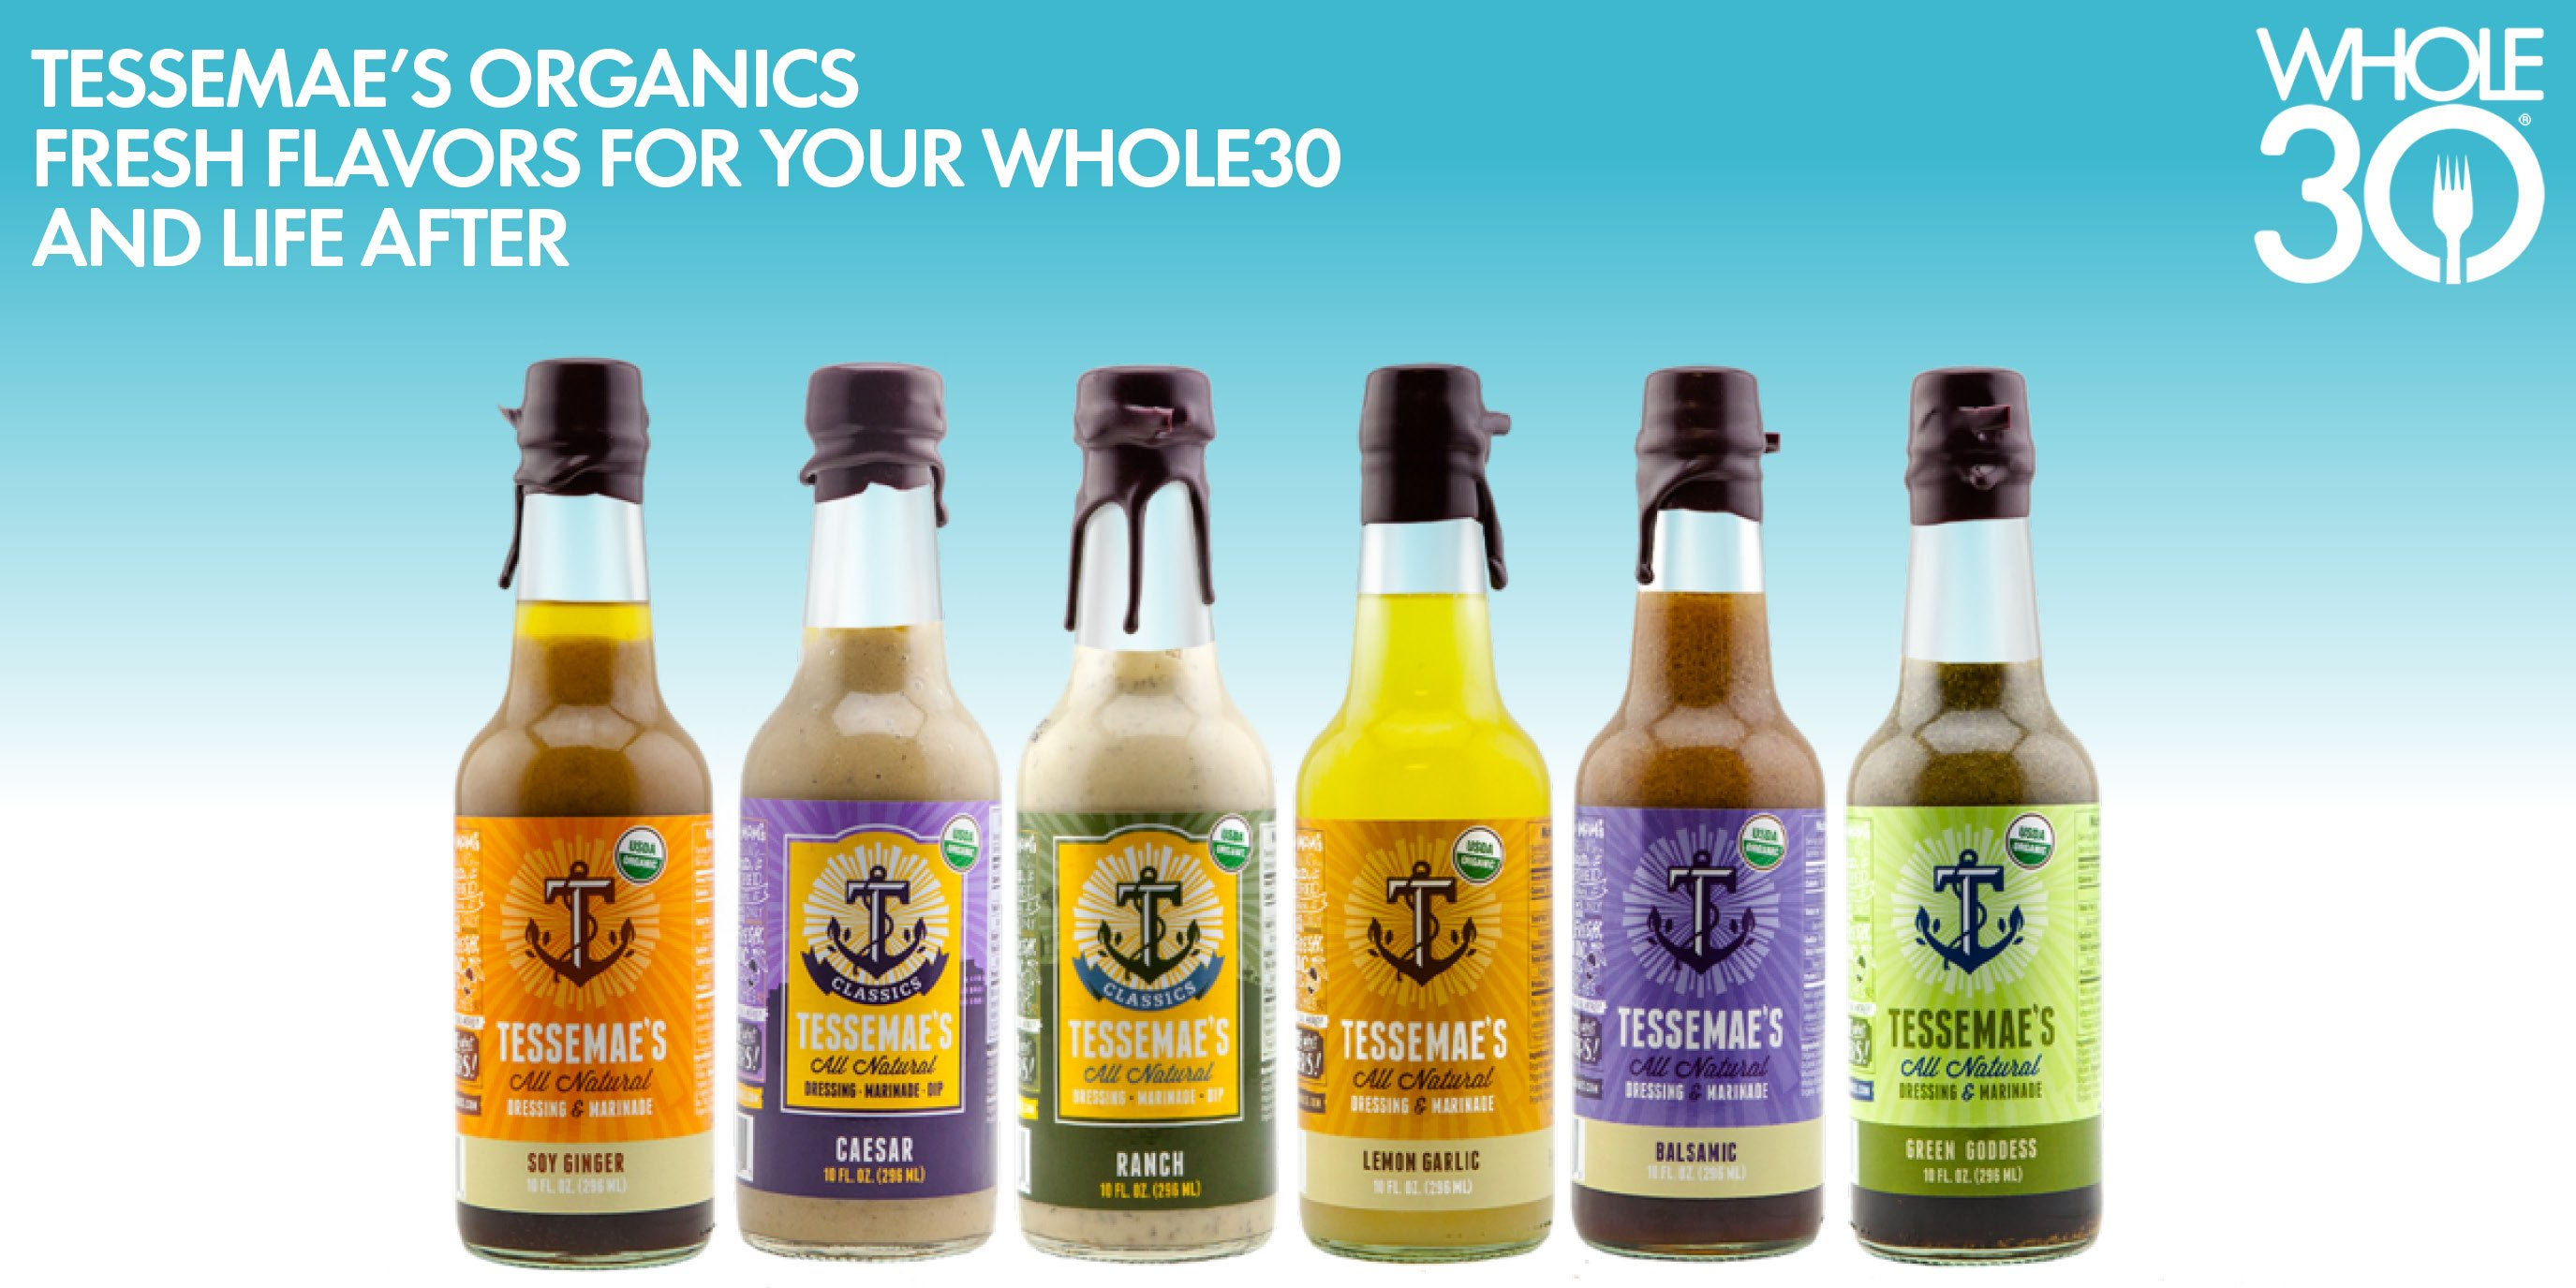 Going Organic: A Whole30 Q&A with Tessemae's